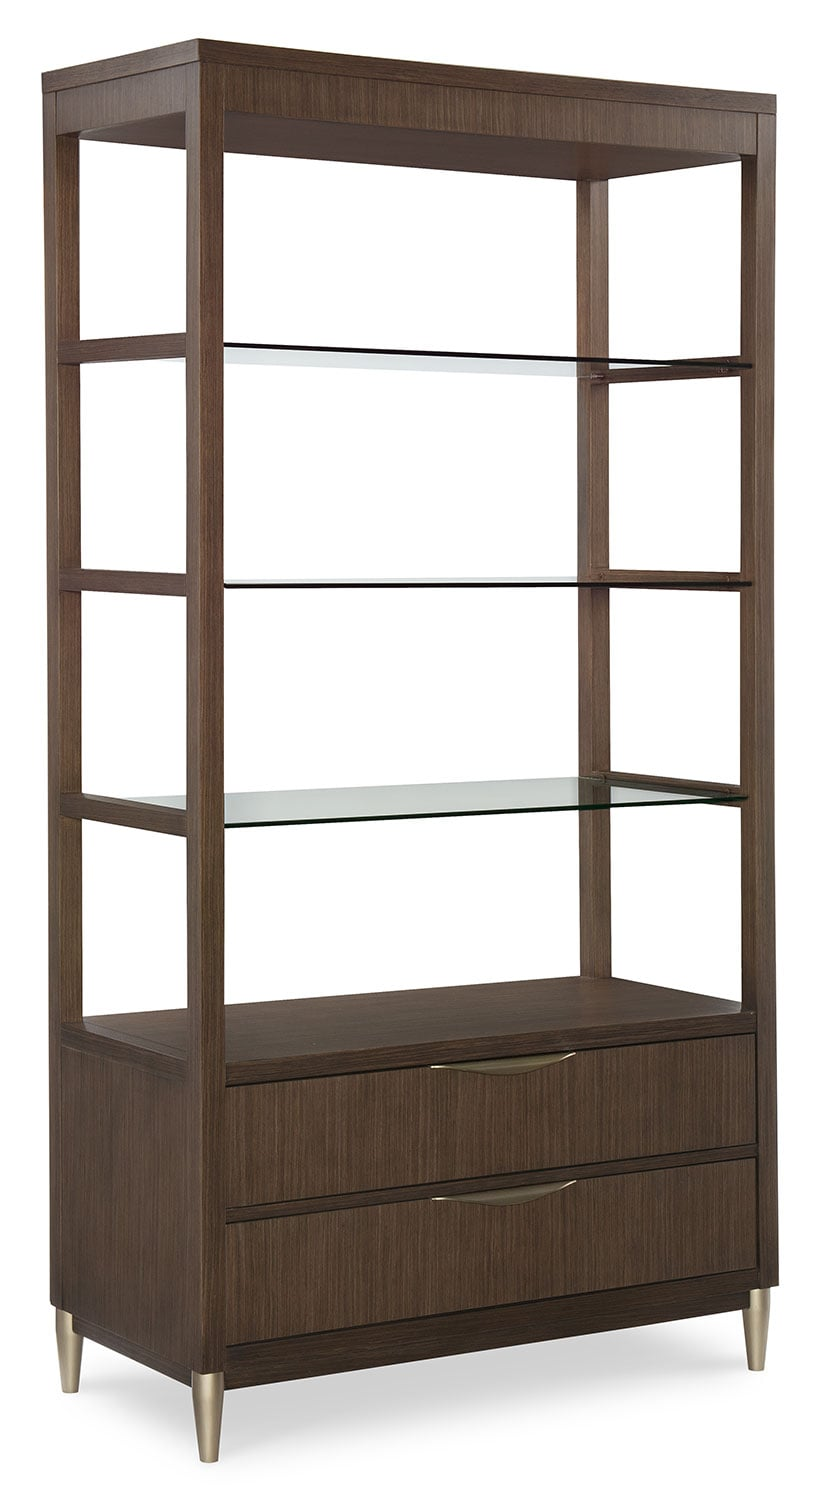 Dining Room Furniture - Rachael Ray Soho Etagere - Ash Brown